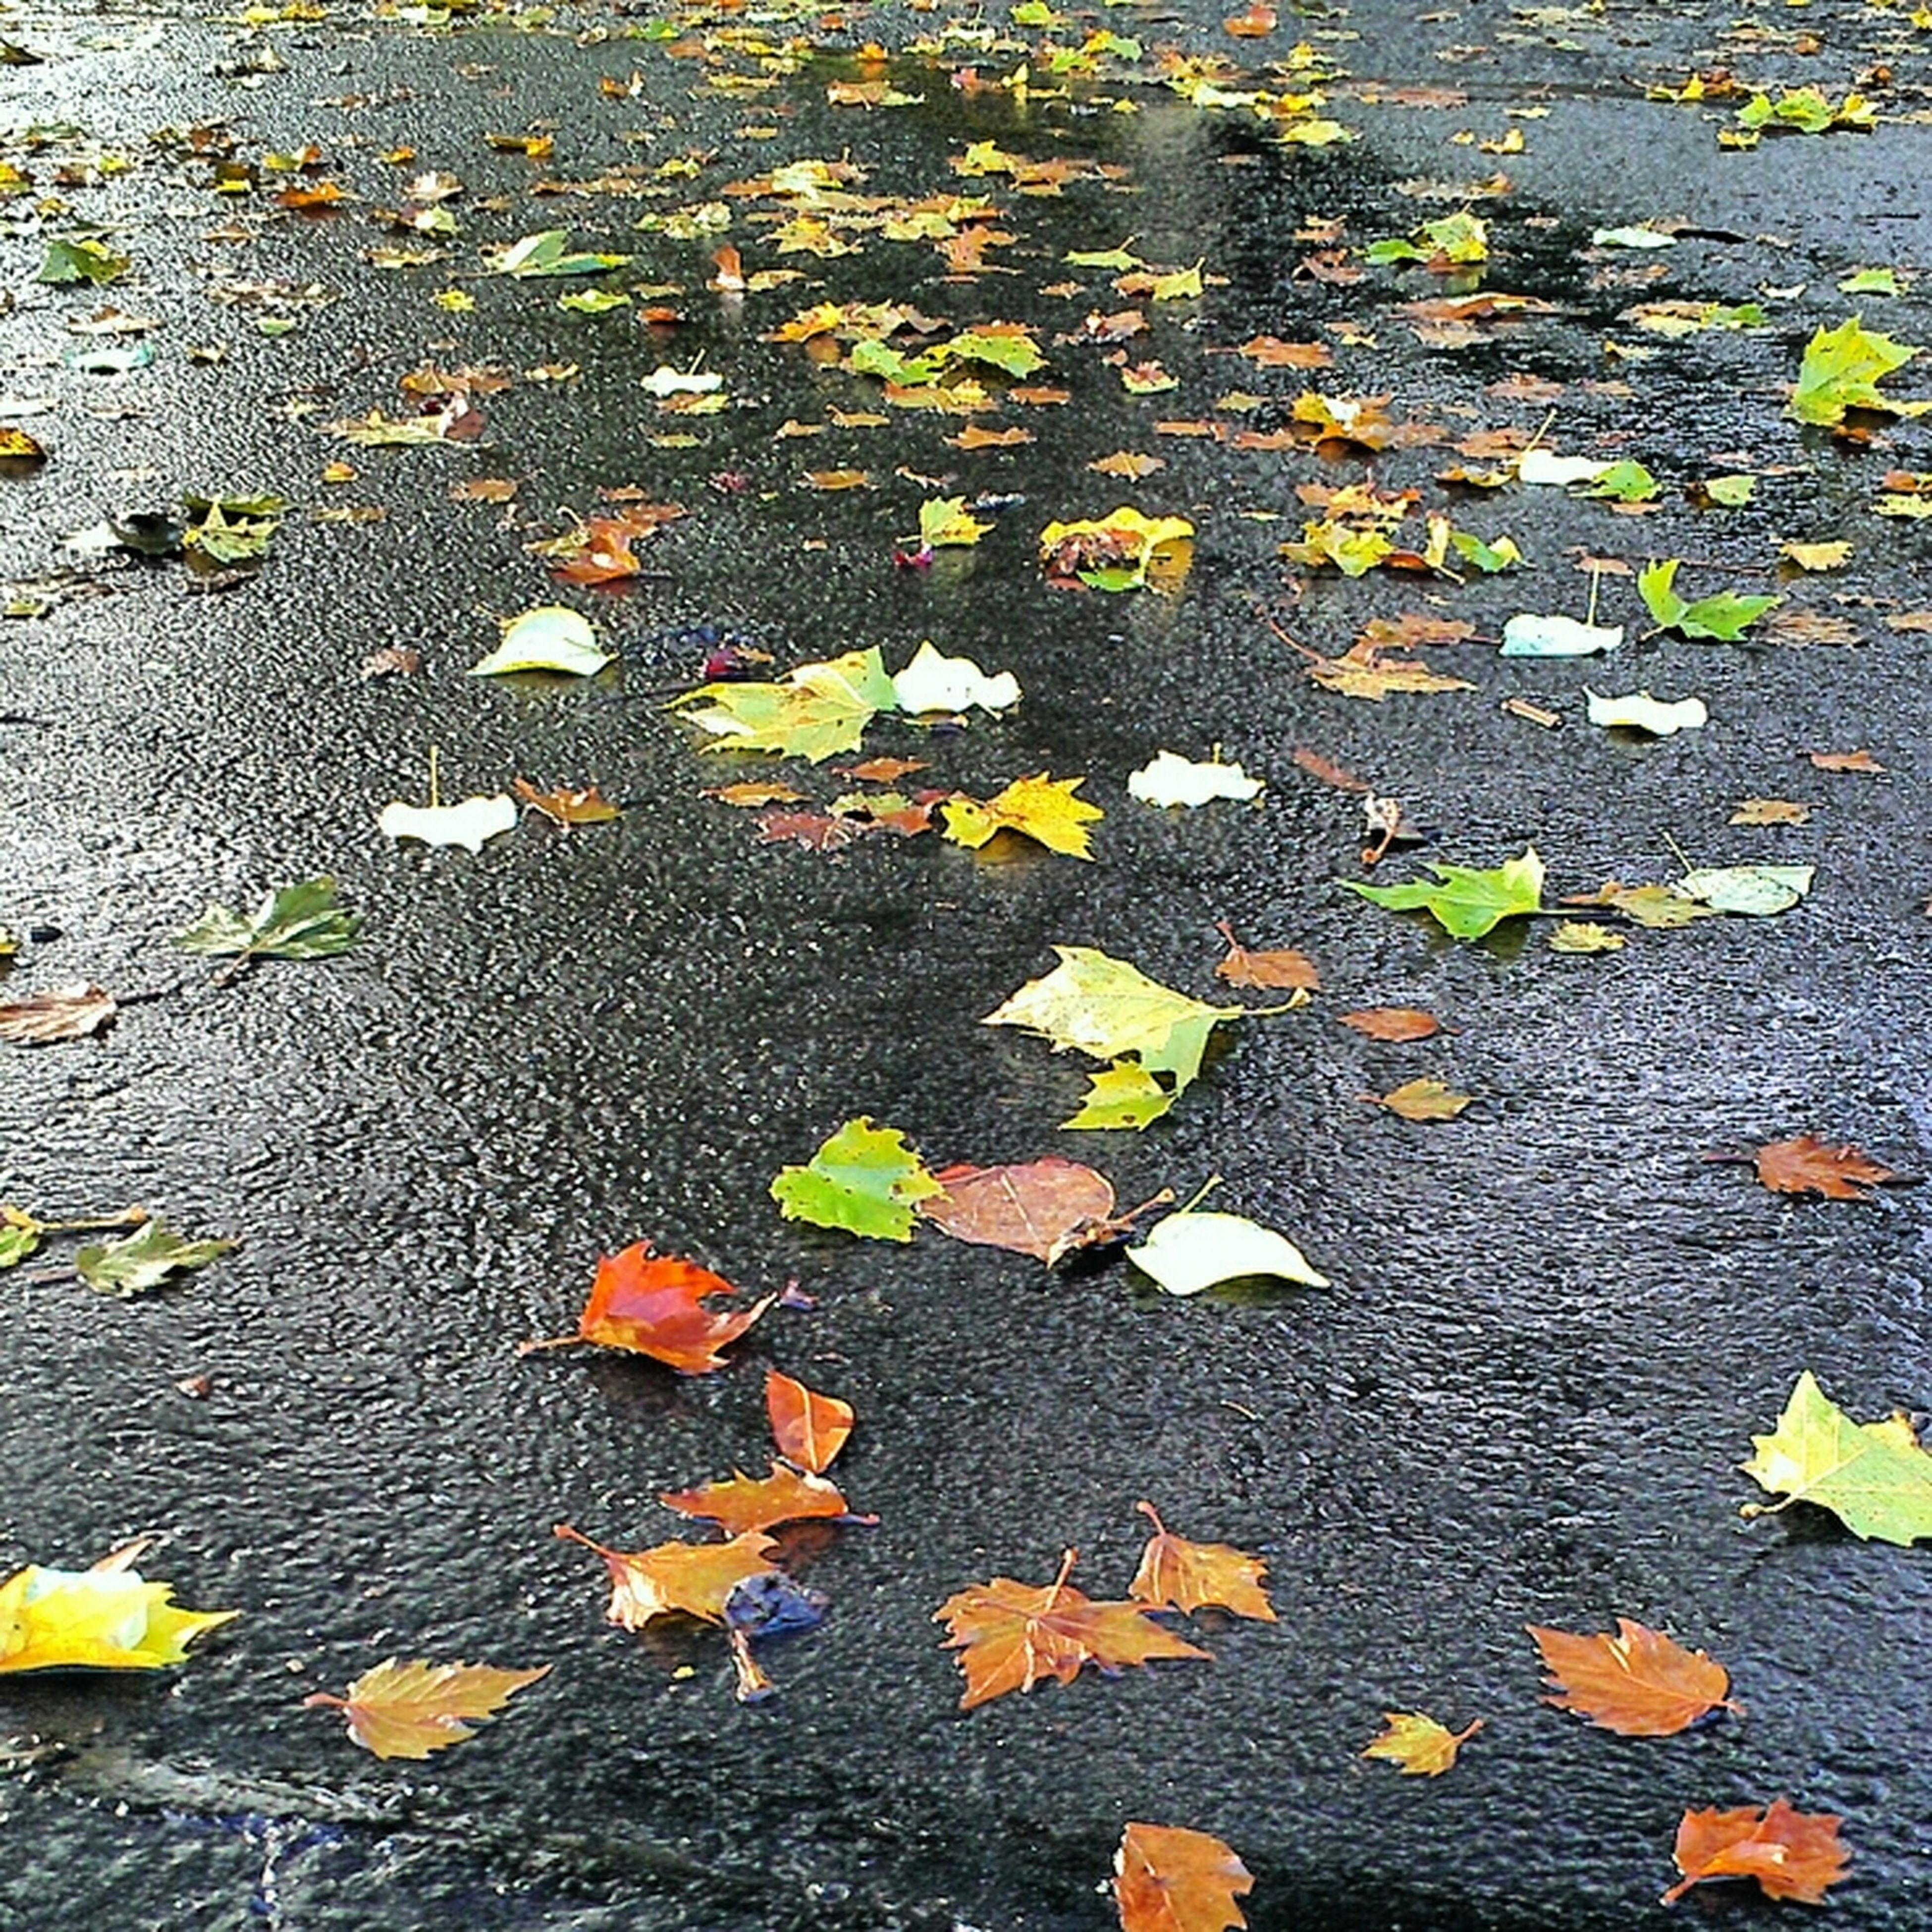 autumn, leaf, change, high angle view, season, fallen, leaves, yellow, street, asphalt, dry, road, nature, falling, day, outdoors, no people, maple leaf, transportation, ground